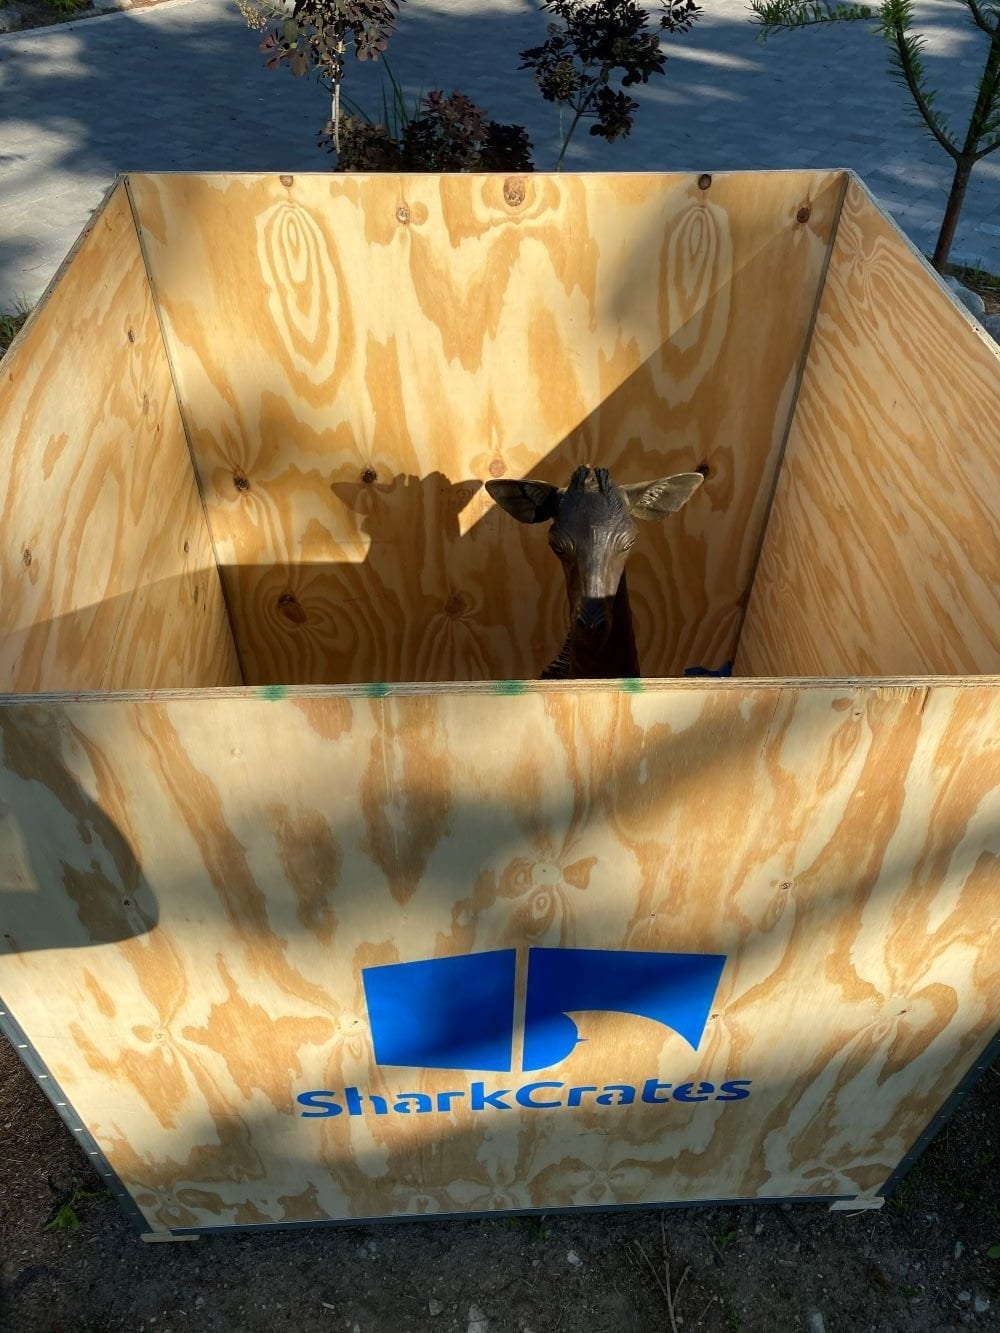 Giraffe poking its head out of the SharkCrate